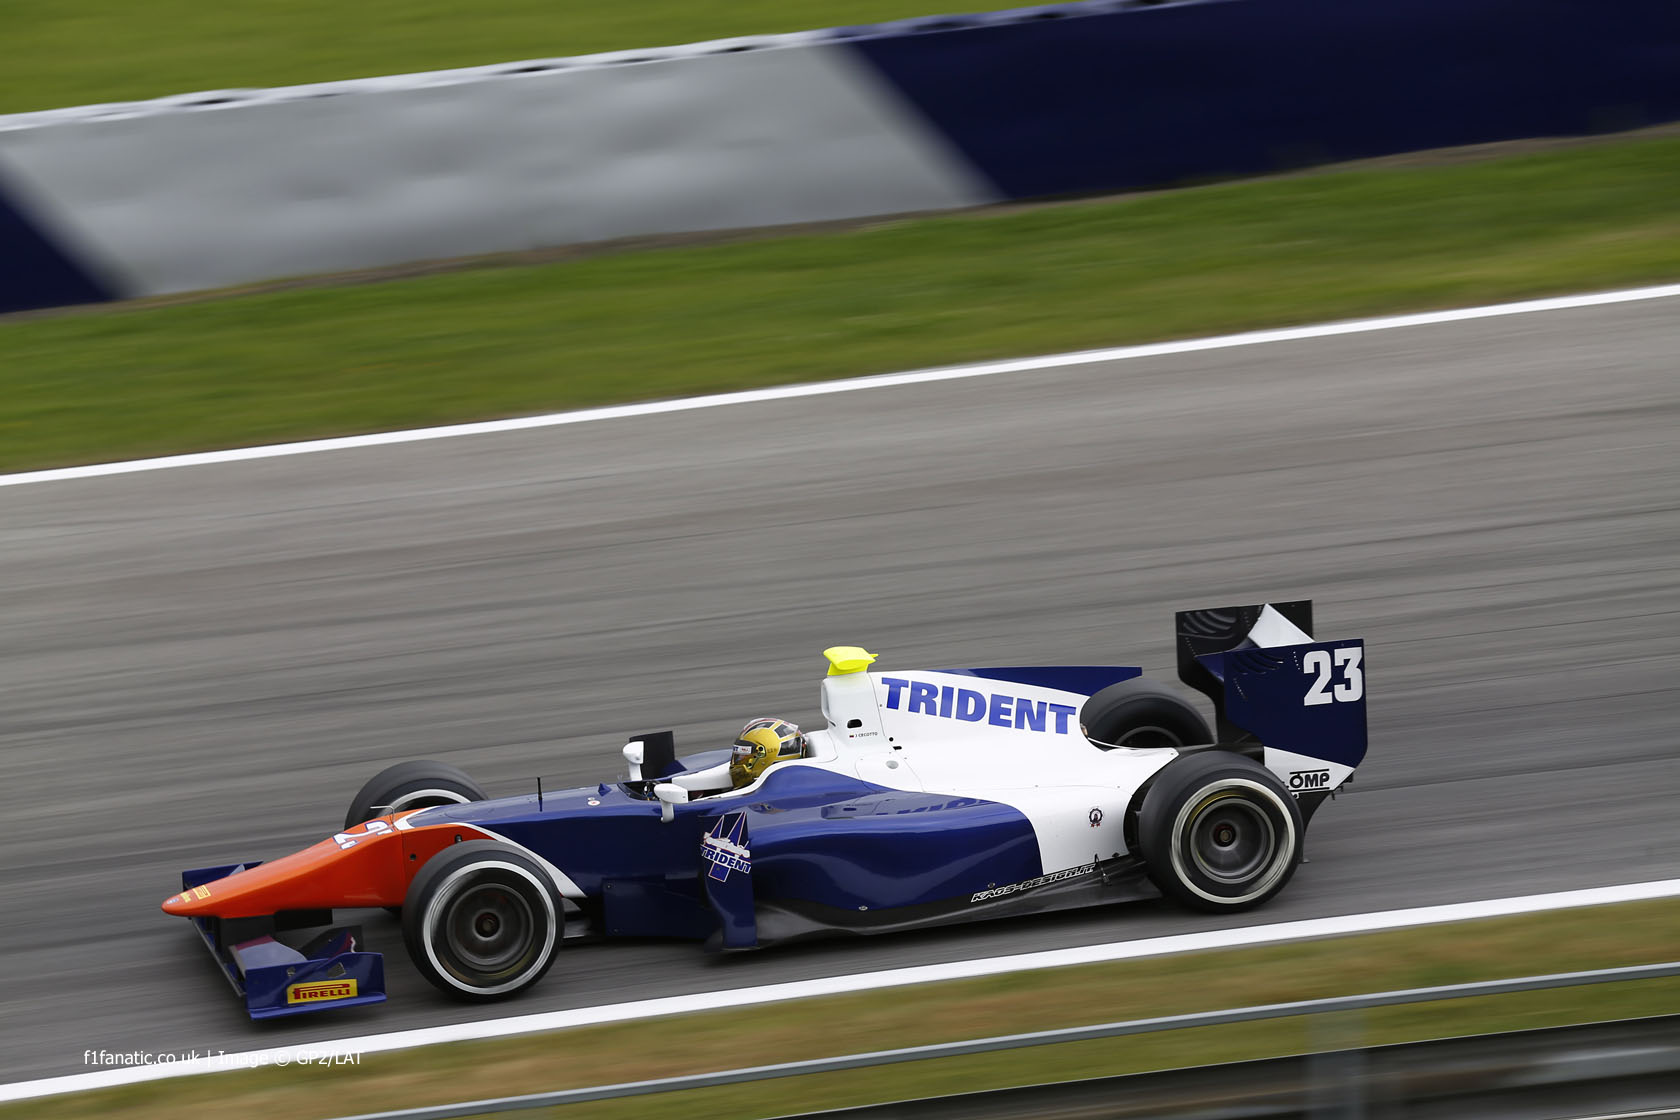 Johnny Cecotto Jnr, Trident, GP2, Red Bull Ring, 2014, 2